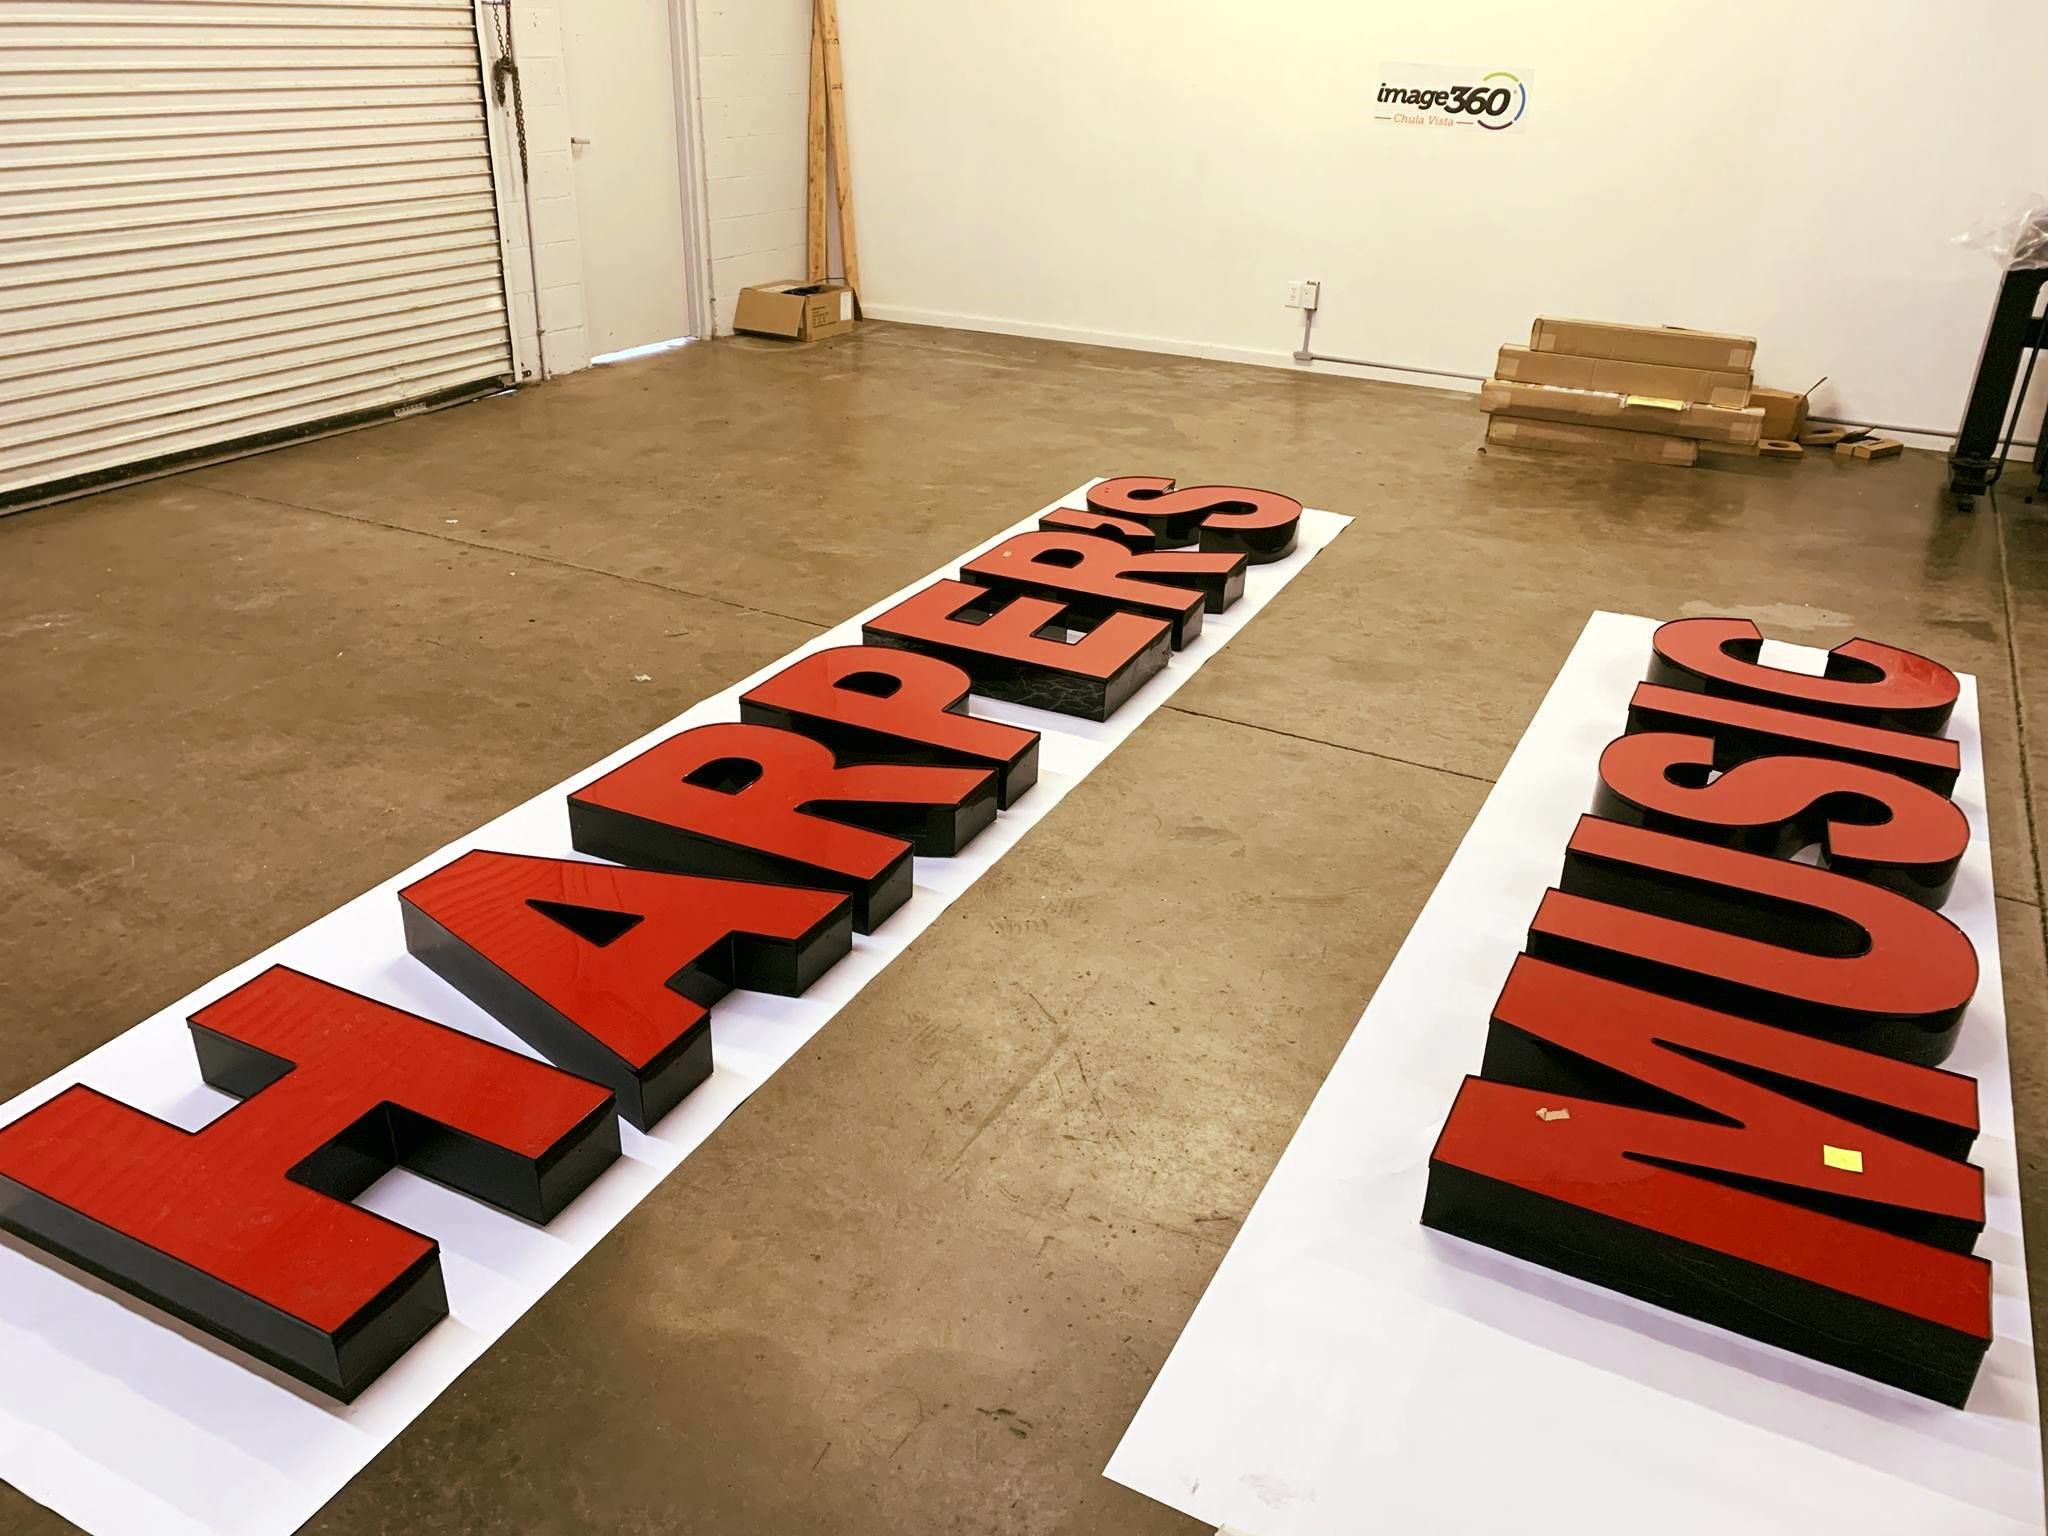 3D Signs & Dimensional Letters | Exterior & Outdoor Signage | Retail Signs | San Diego-Chula Vista, CA